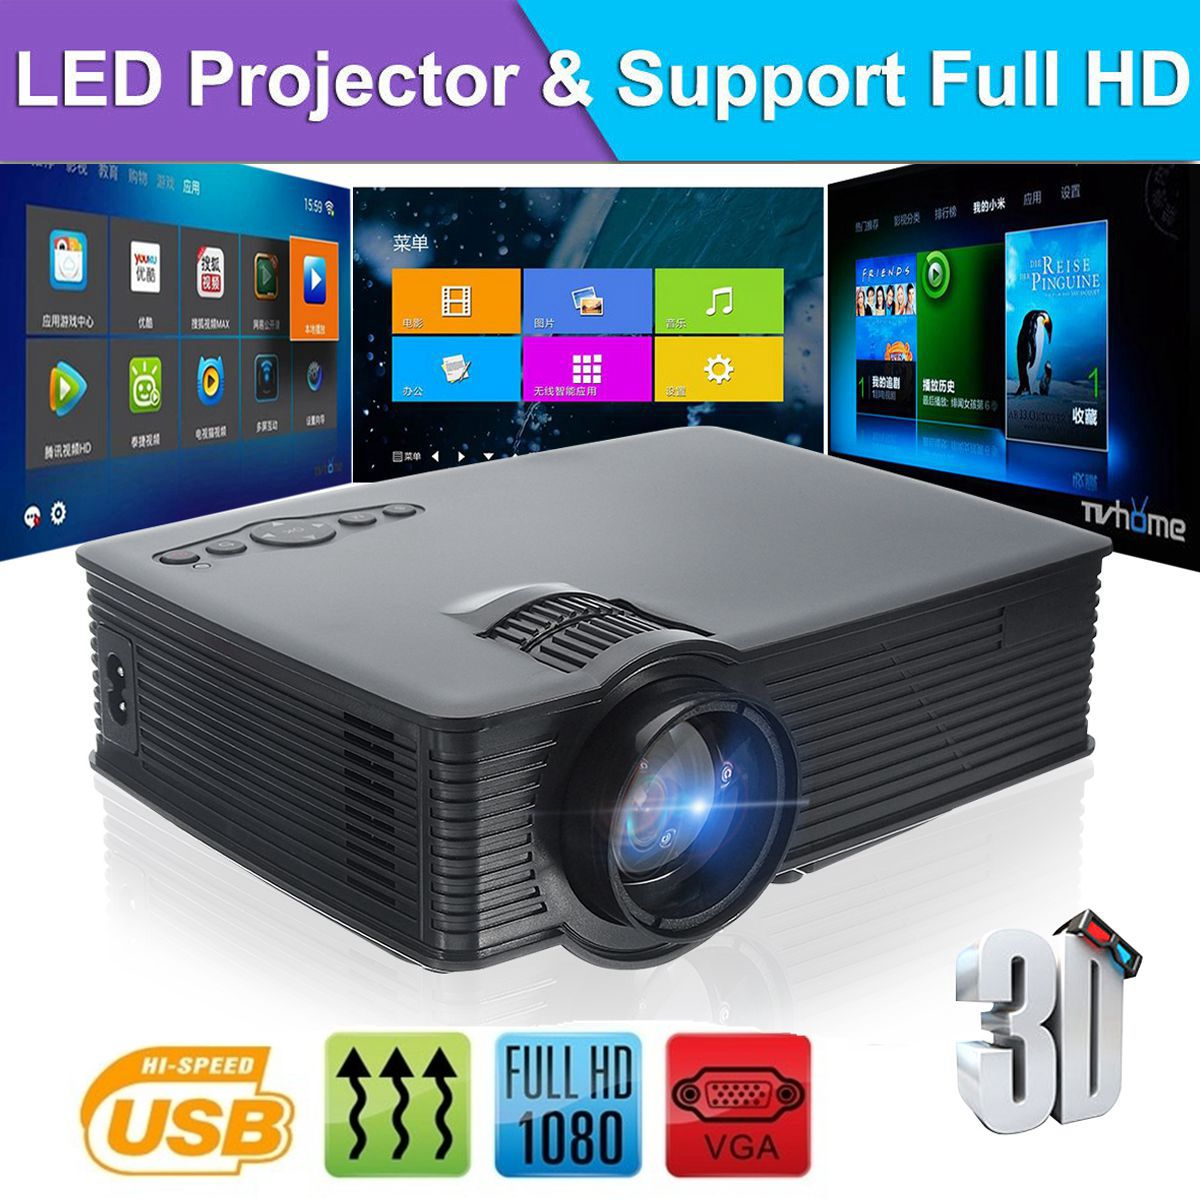 260 Multimedia 3000 Lumens Hd Led Projector Home Theater: Aliexpress.com : Buy Portable 3000 Lumens HD 1080P 3D